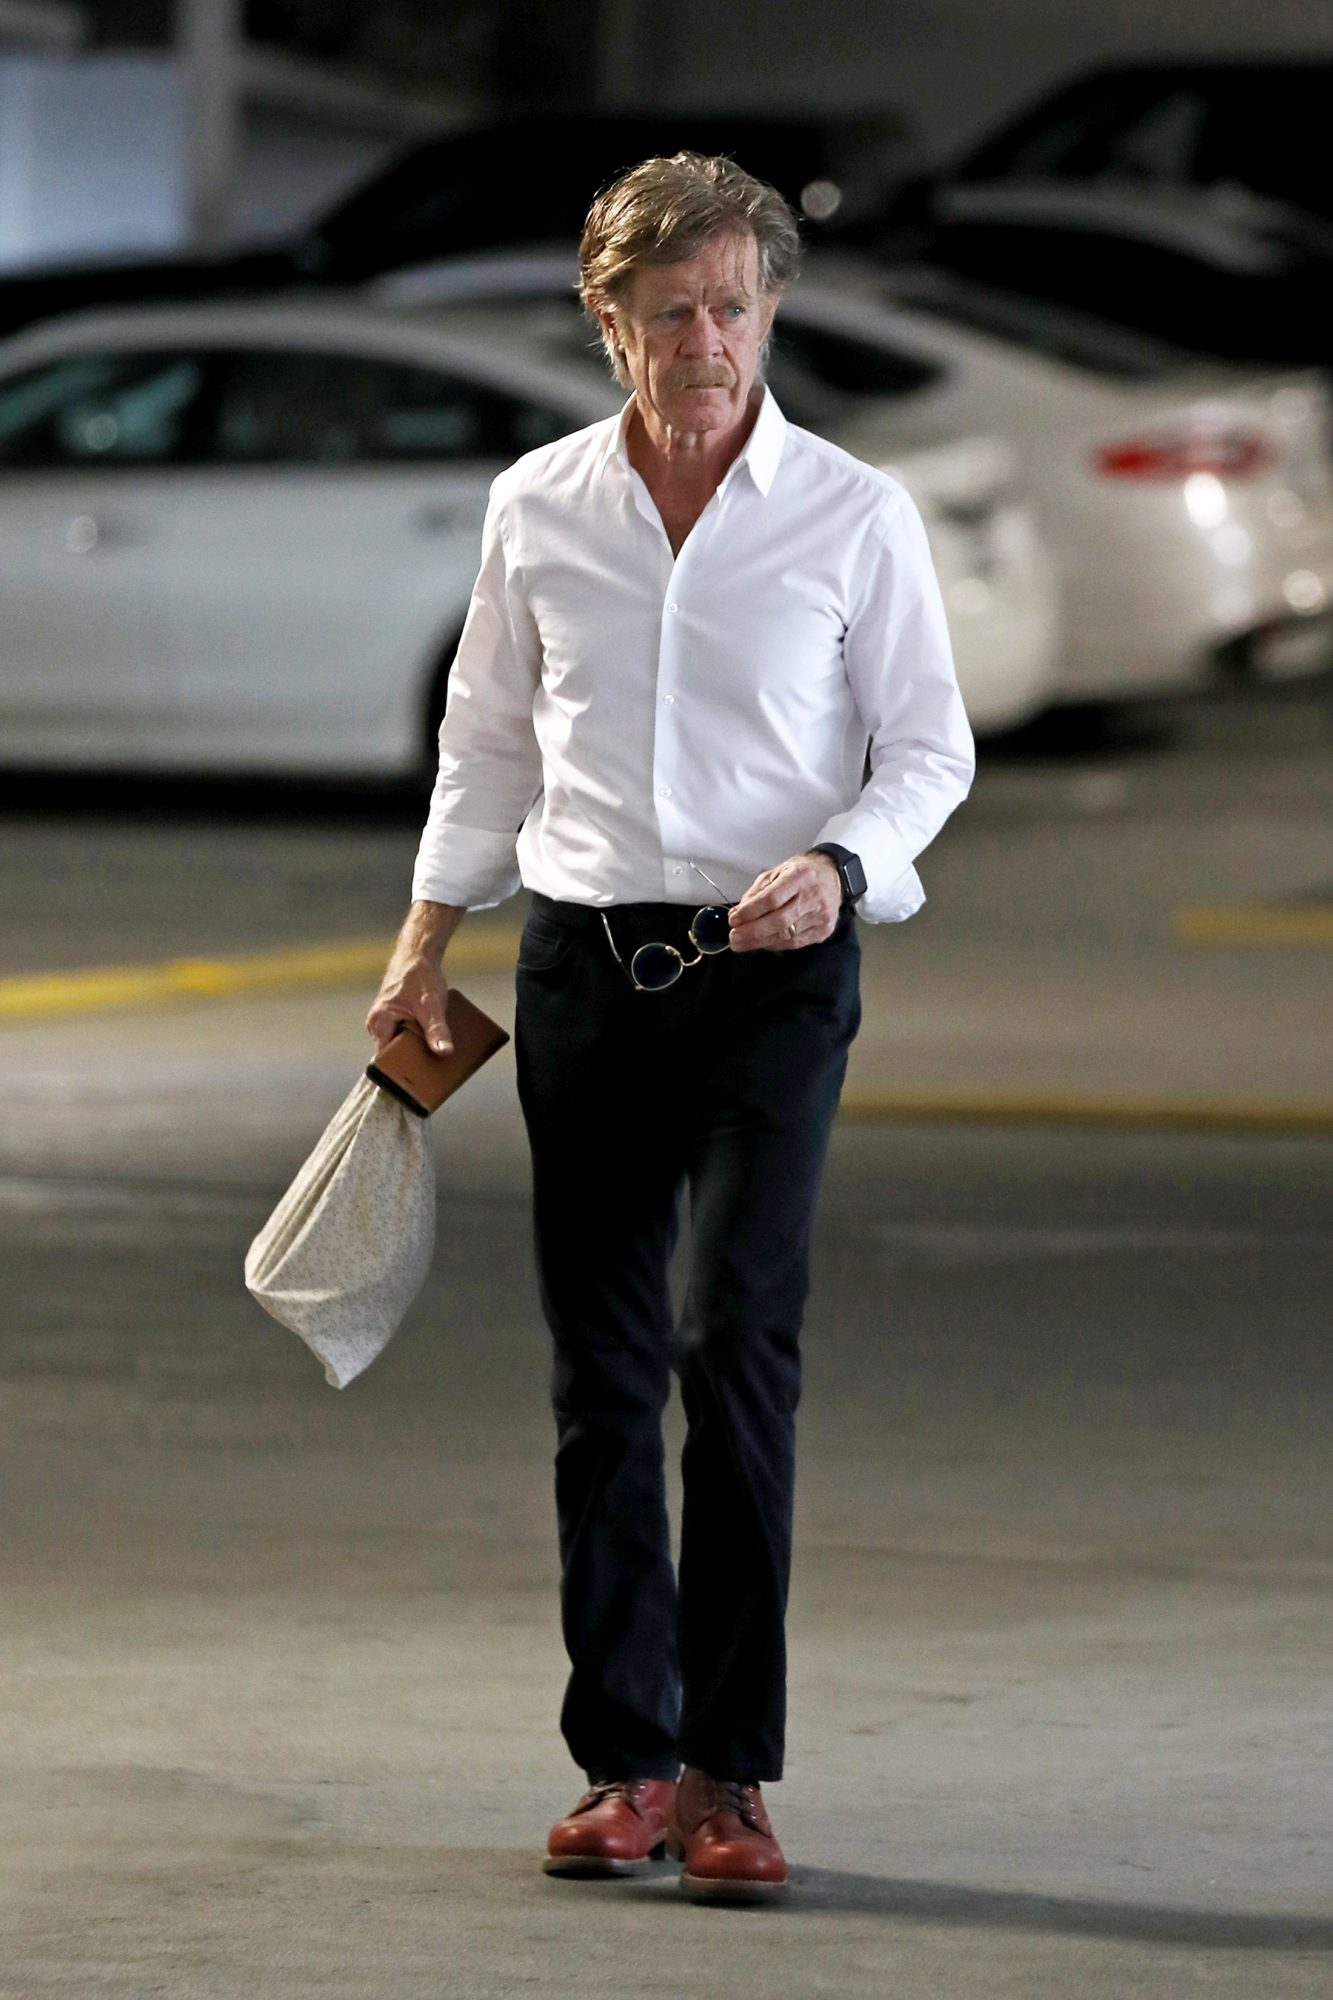 William H Macy seen for the first time after Felicity Huffman pleaded guilty in the college cheating scandal